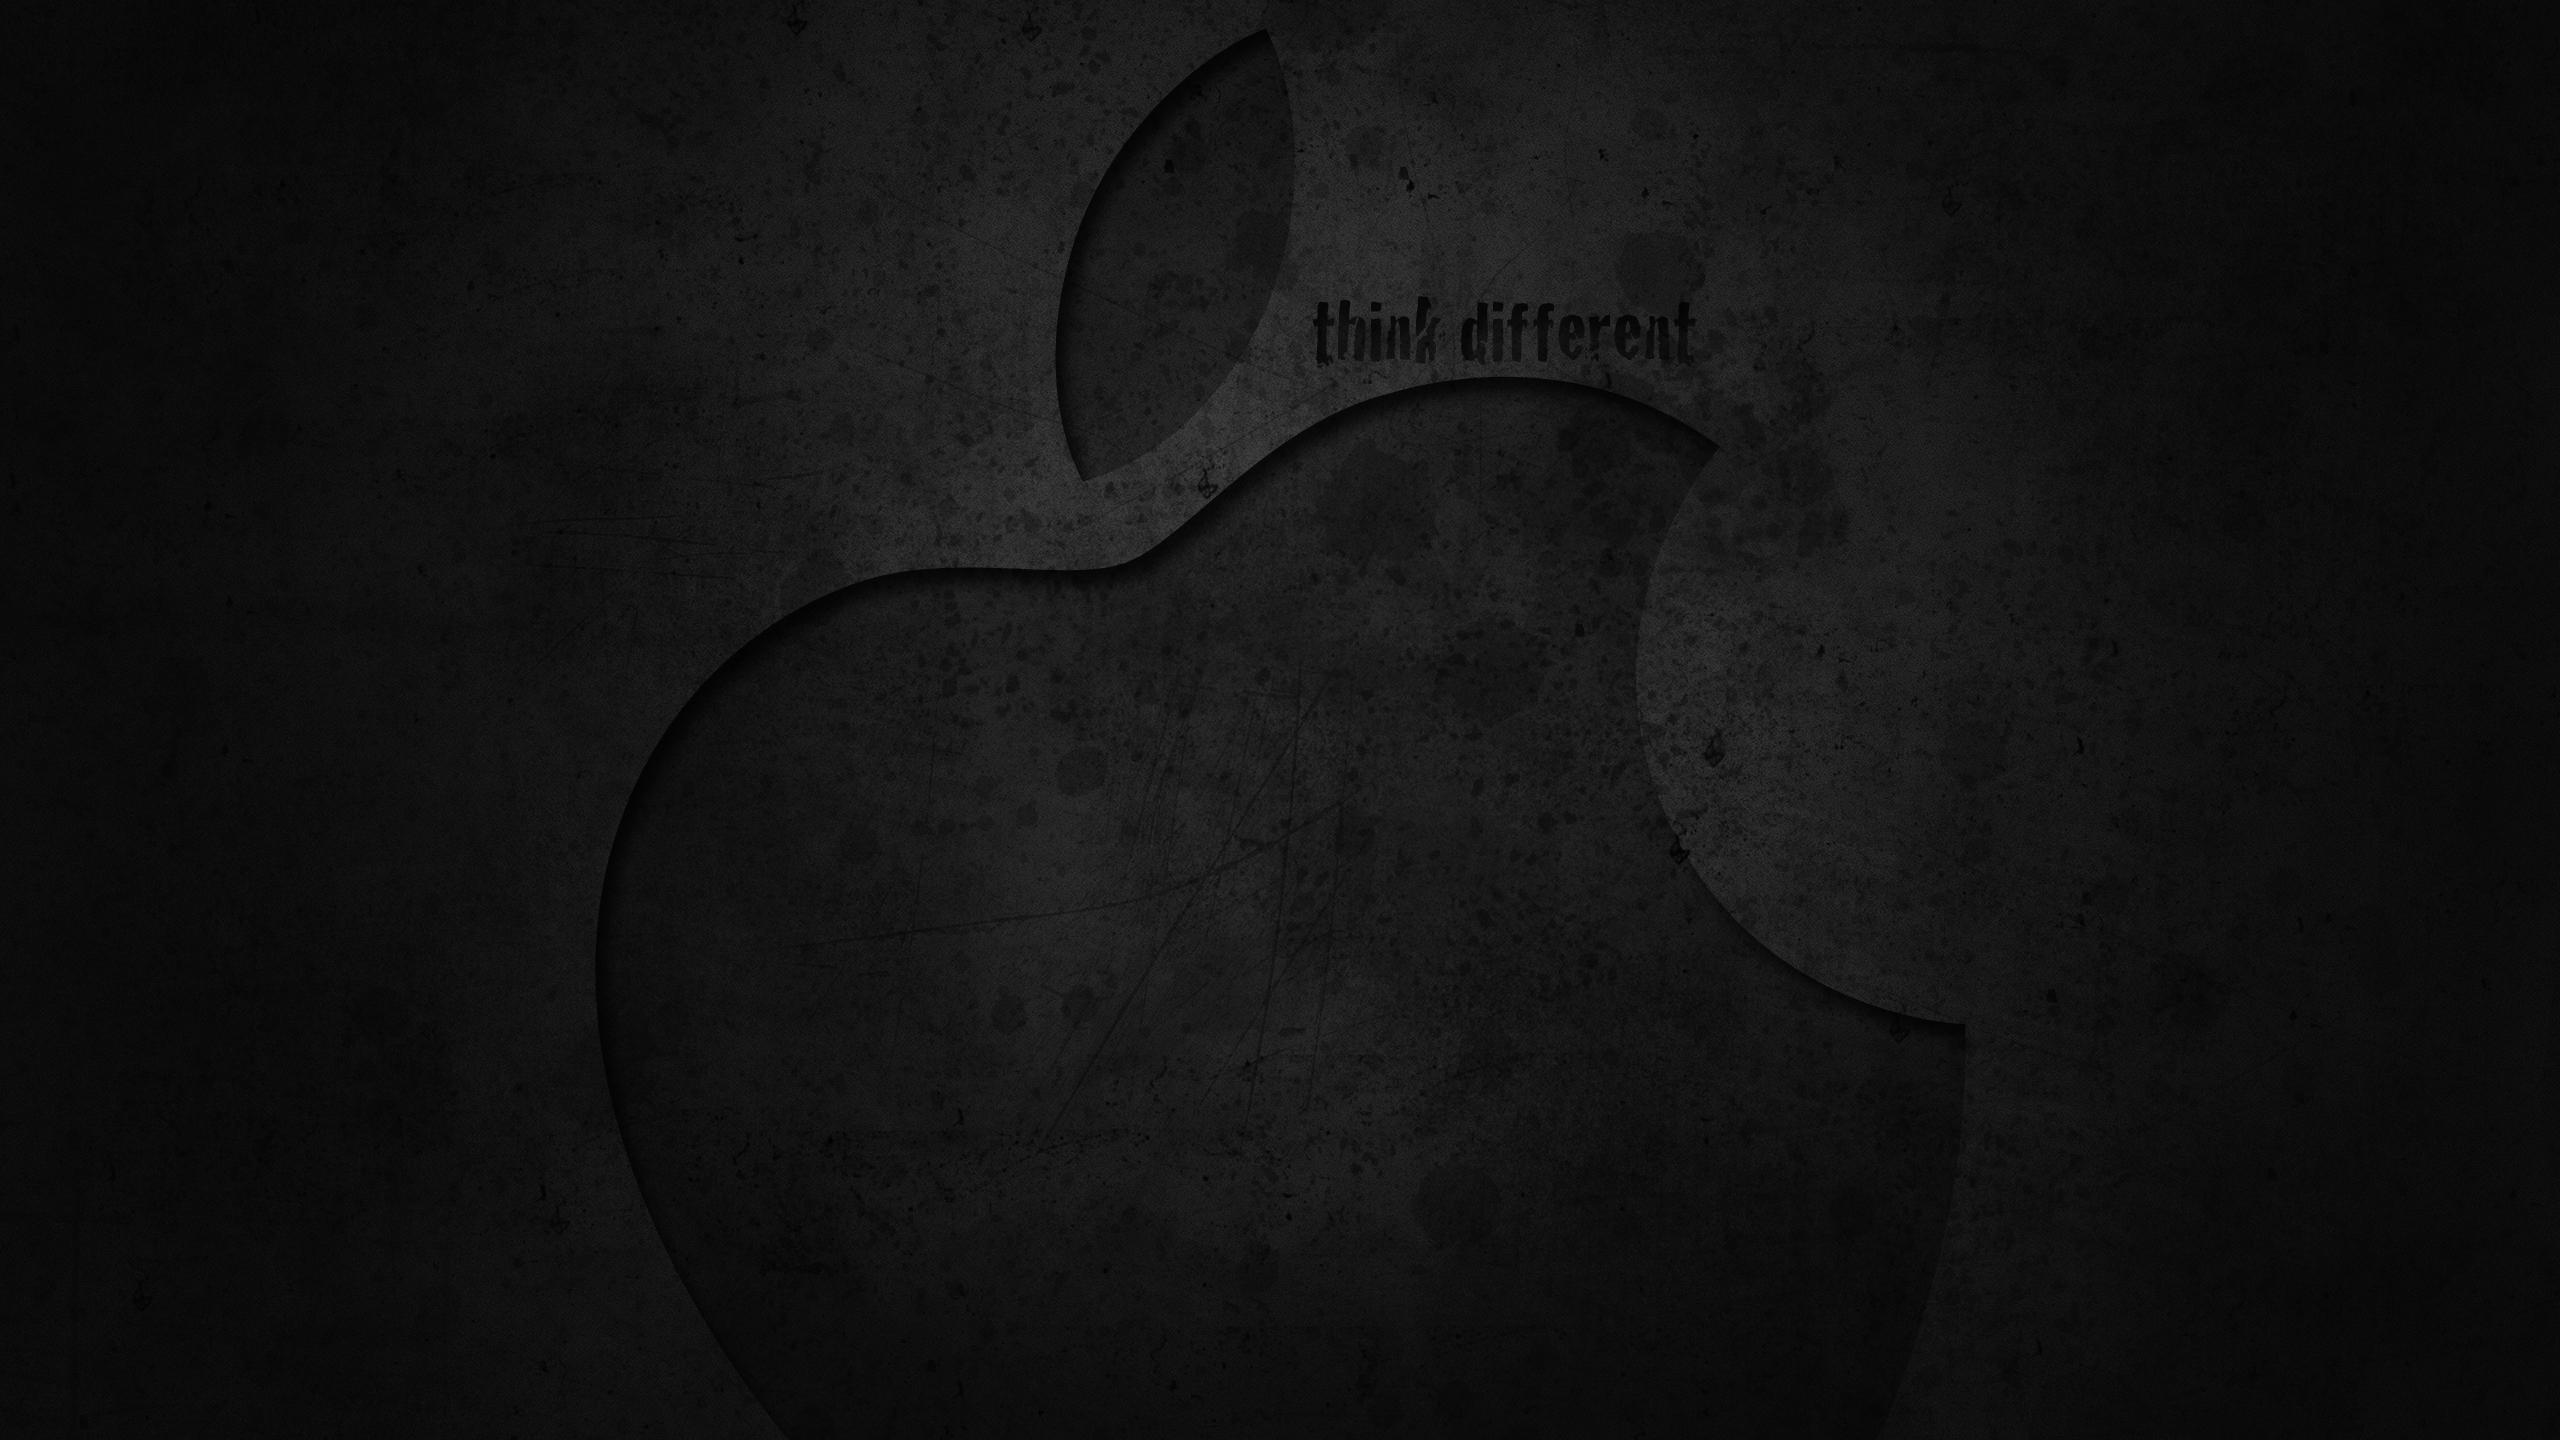 ..:think different:.. by stow